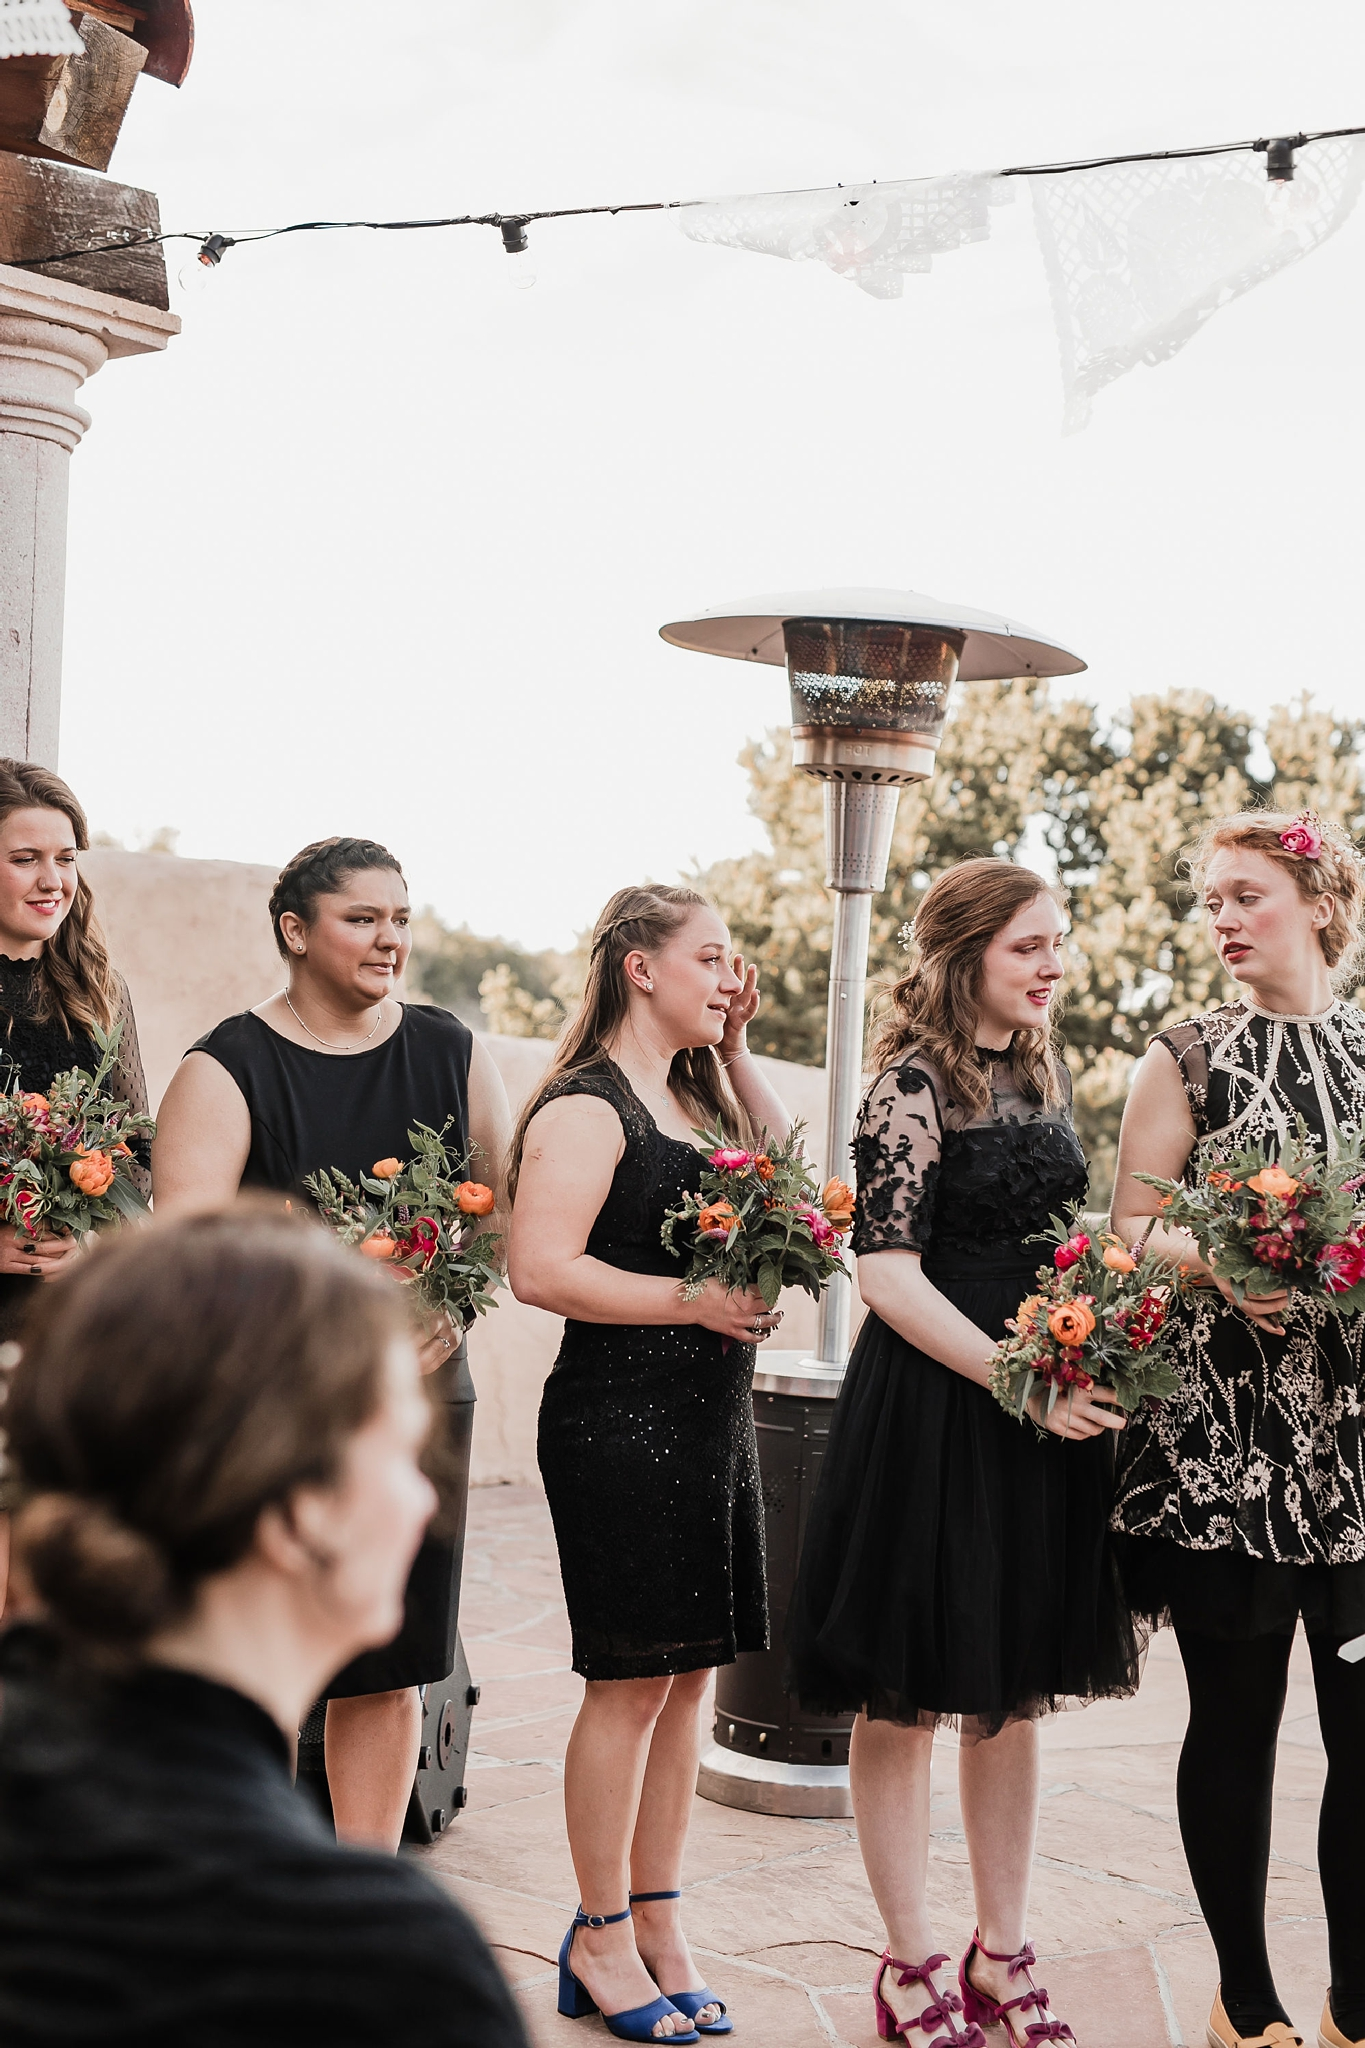 Alicia+lucia+photography+-+albuquerque+wedding+photographer+-+santa+fe+wedding+photography+-+new+mexico+wedding+photographer+-+new+mexico+wedding+-+wedding+vows+-+writing+your+own+vows+-+wedding+inspo_0034.jpg